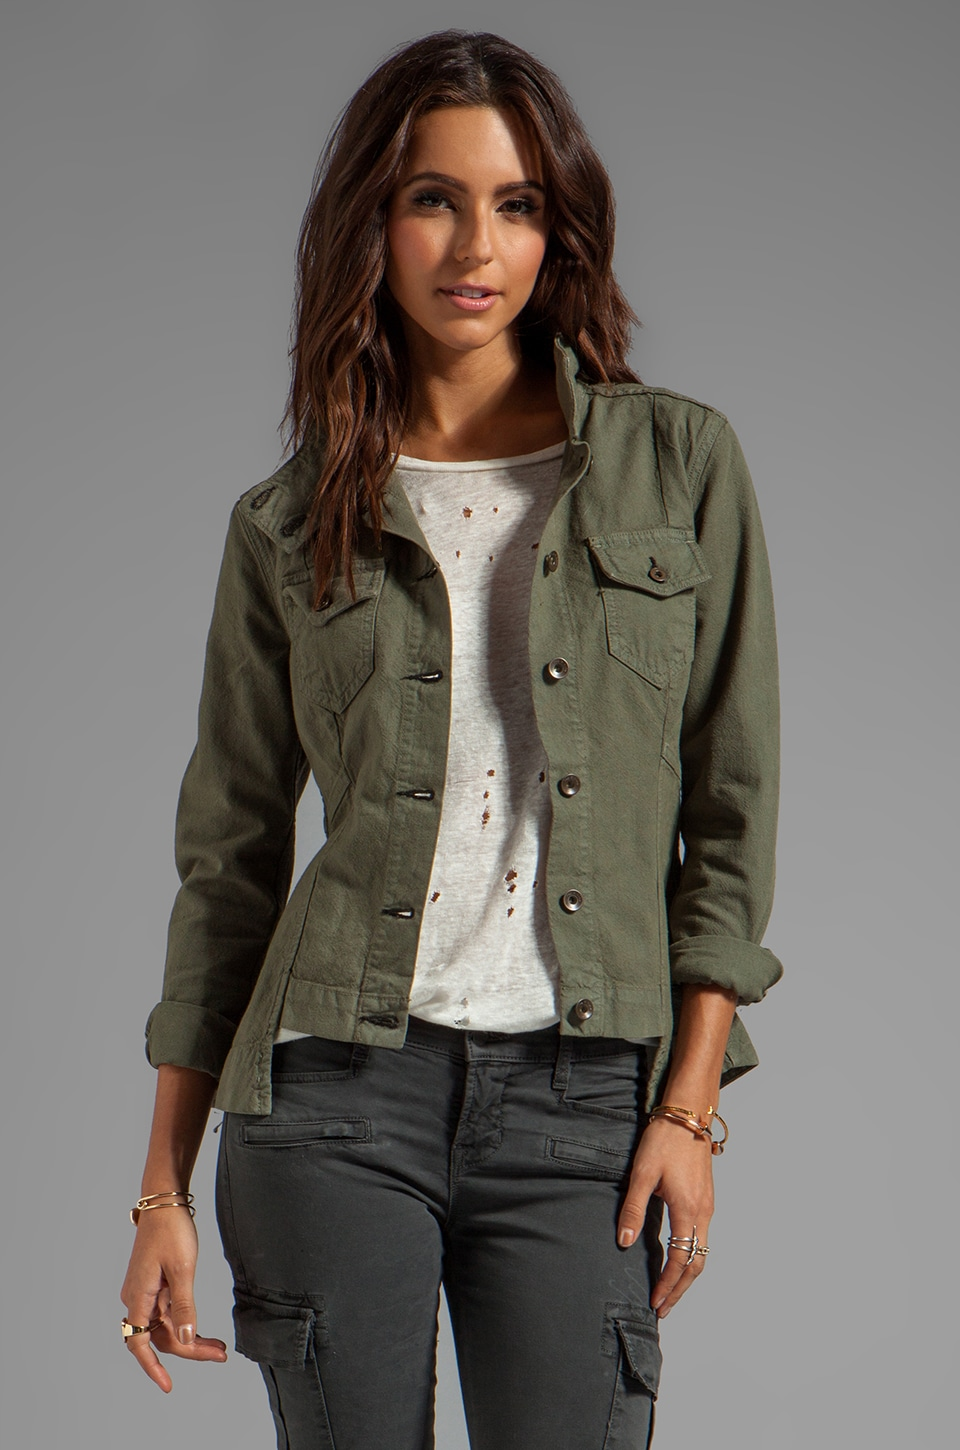 rag & bone/JEAN Chamberlain Jacket in Army Canvas